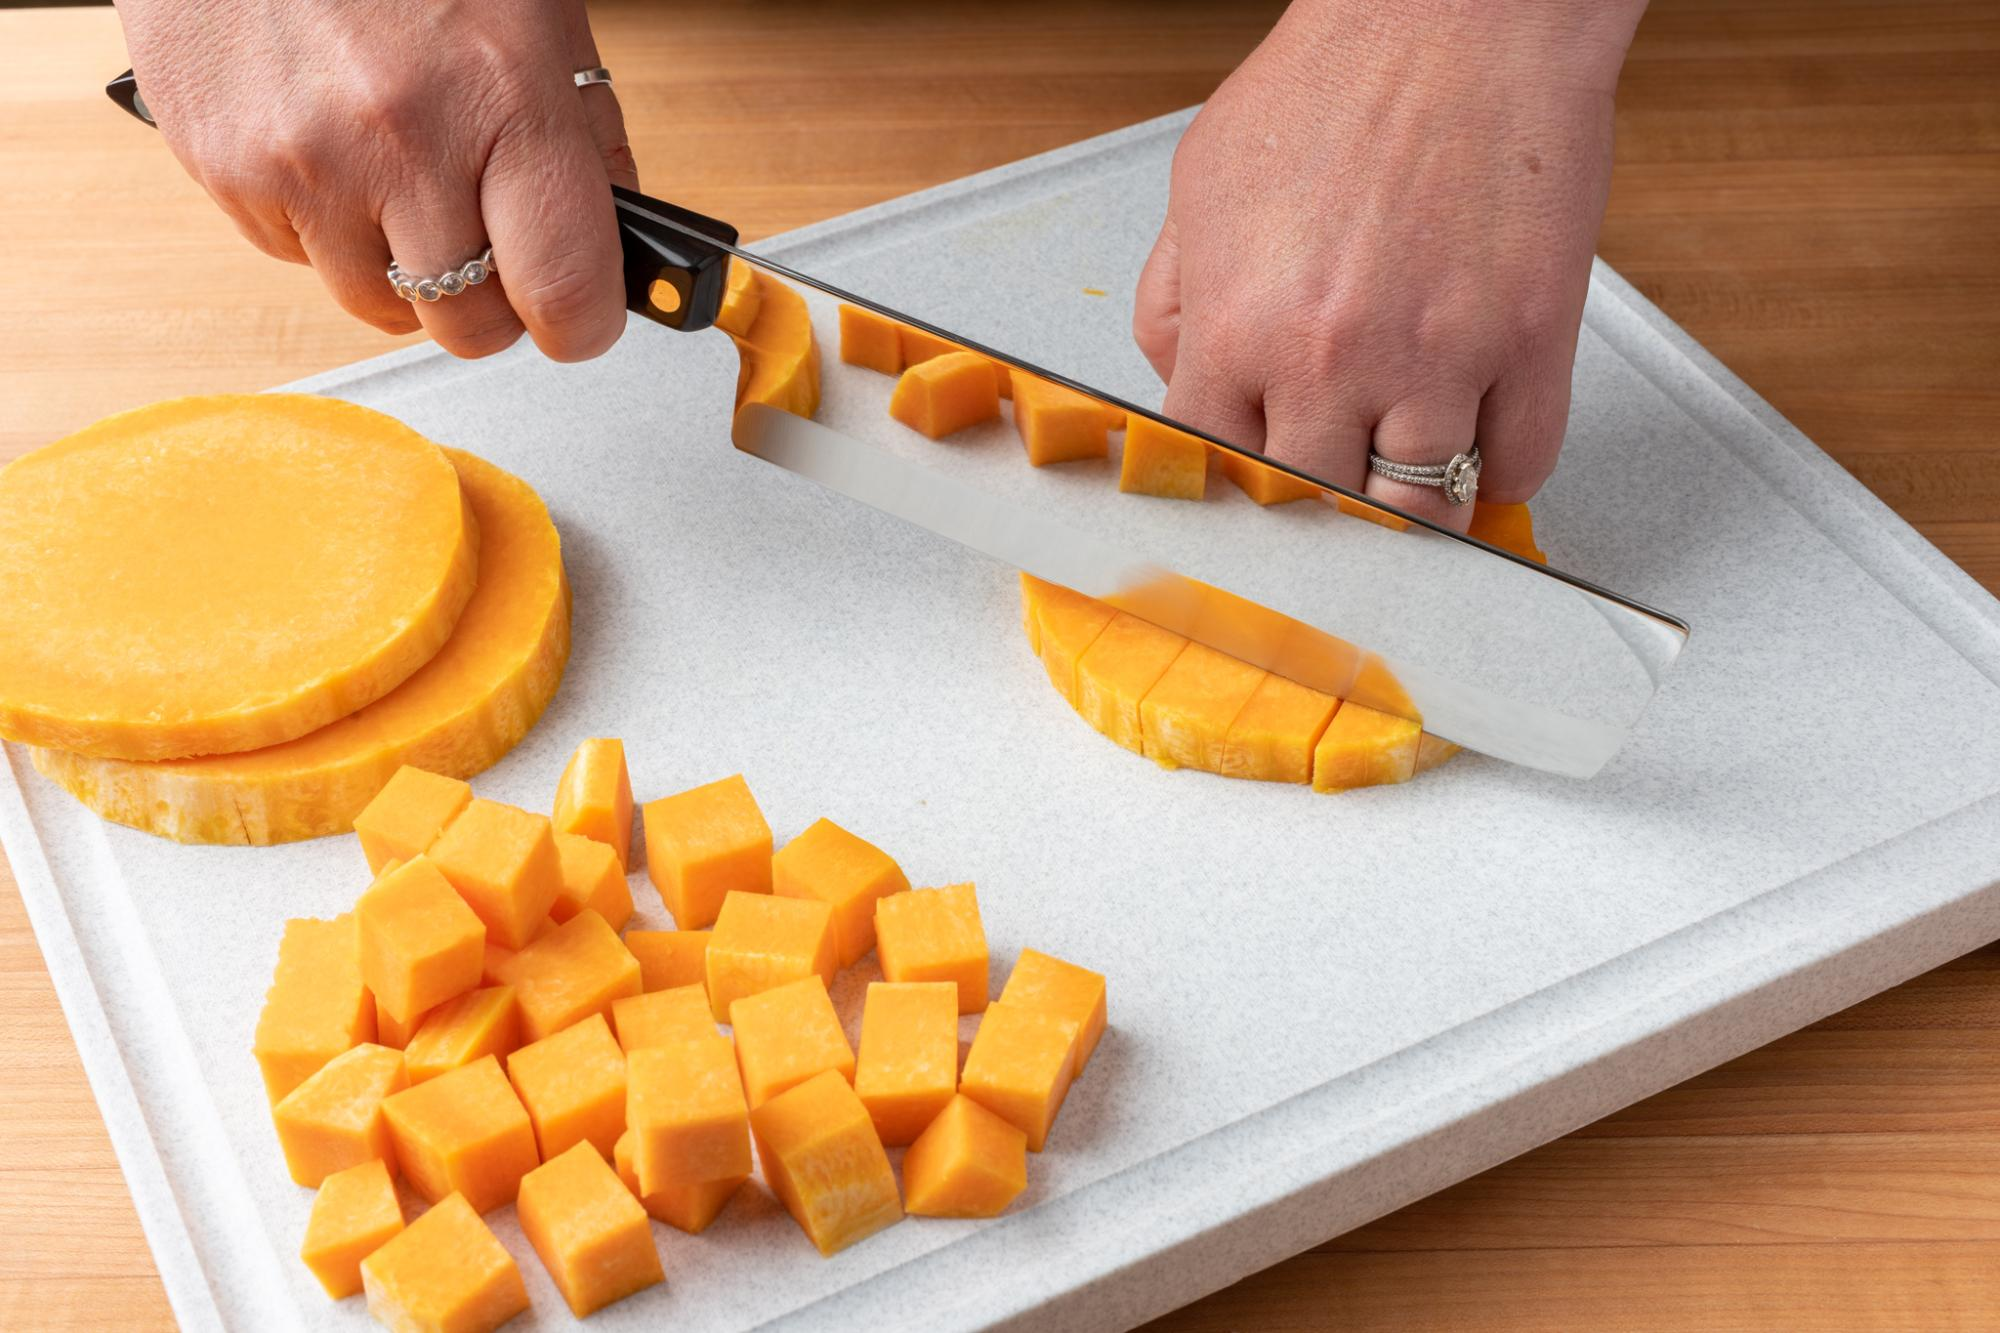 Dicing the butternut squash with a Vegetable Knife.